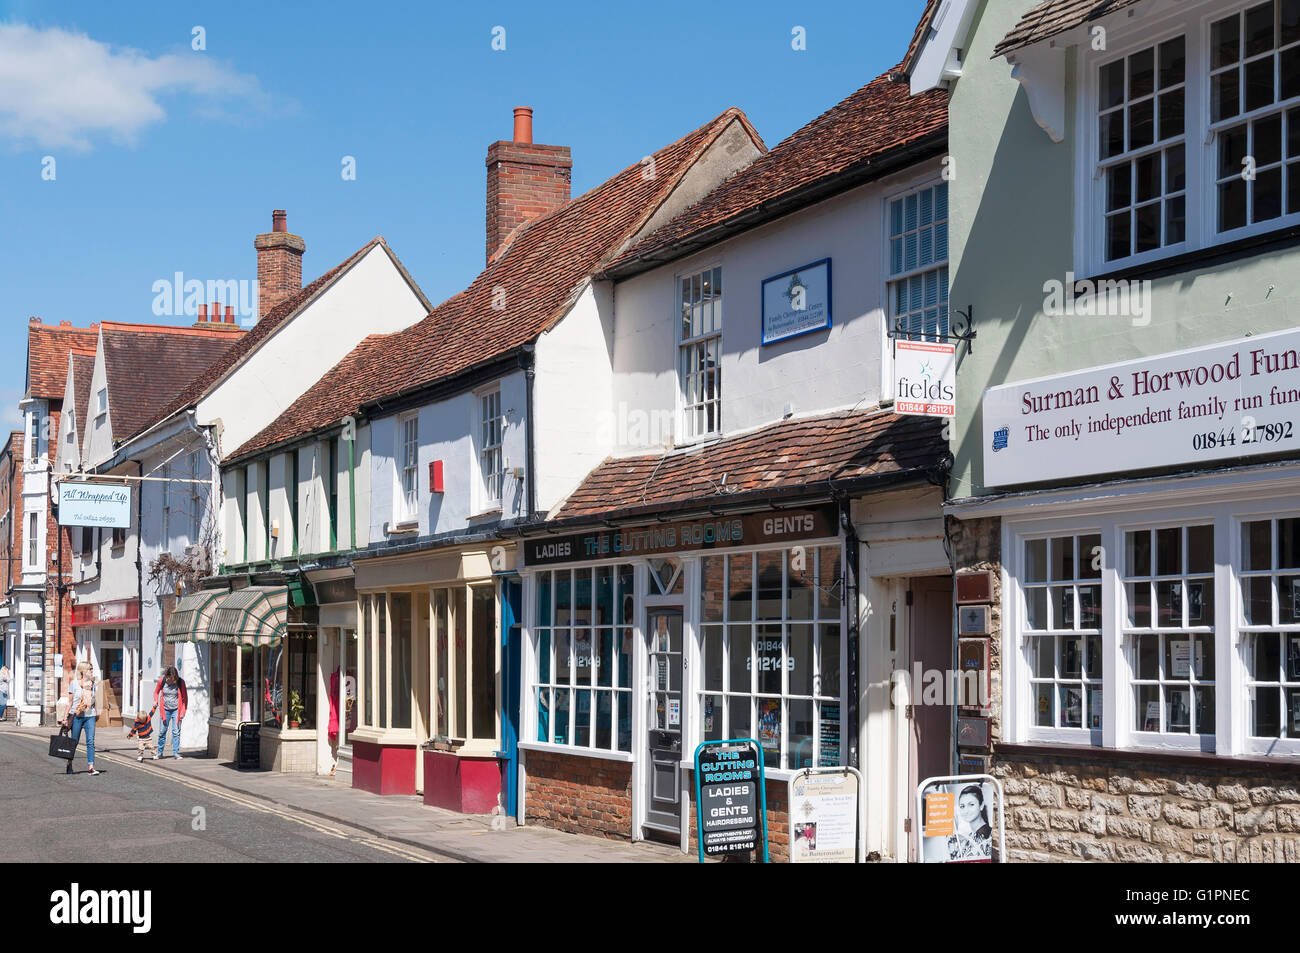 Butter Market, Thame, Oxfordshire, England, United Kingdom - Stock Image